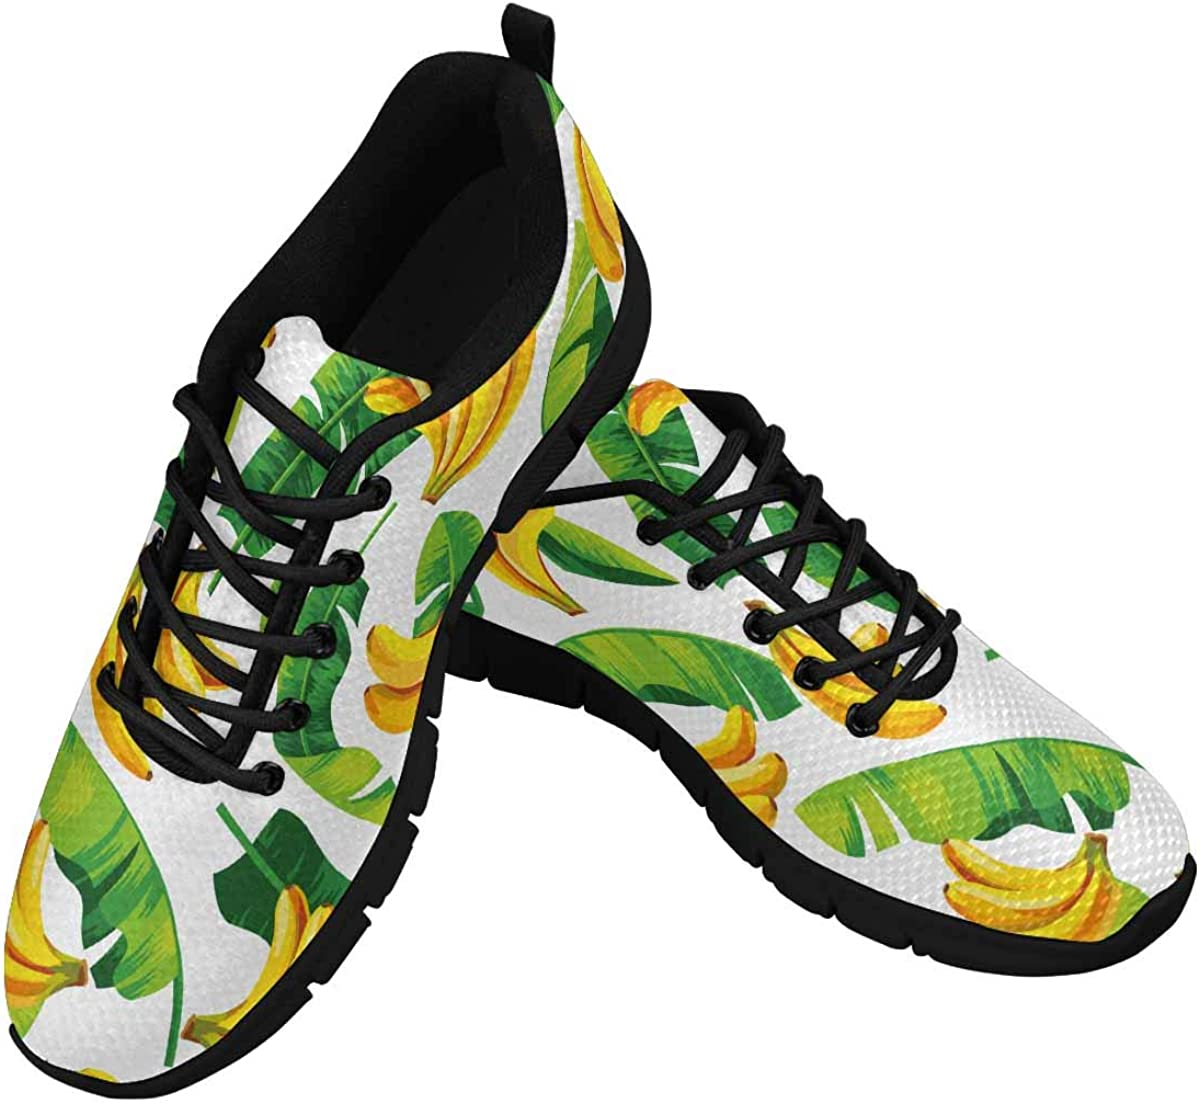 InterestPrint Pattern with Banana Leaves and Bananas Women's Walking Shoes Lightweight Casual Running Sneakers